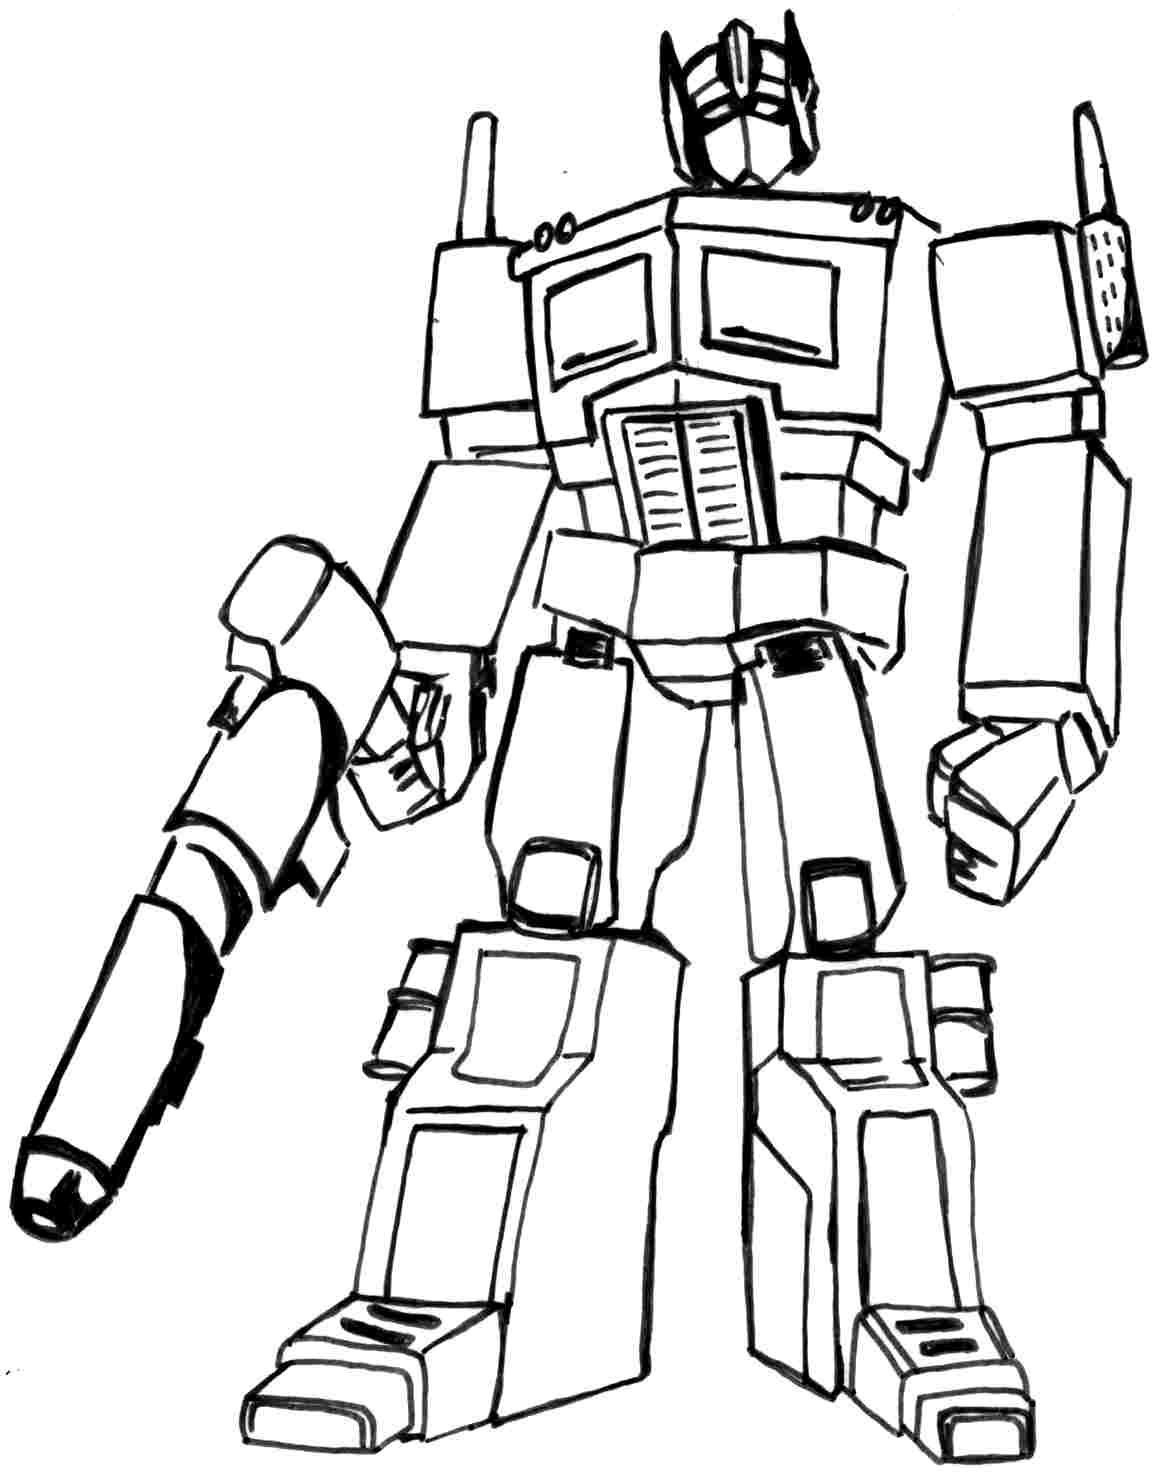 Pinjulia On Colorings In 2019 | Transformers Coloring Pages - Transformers 4 Coloring Pages Free Printable